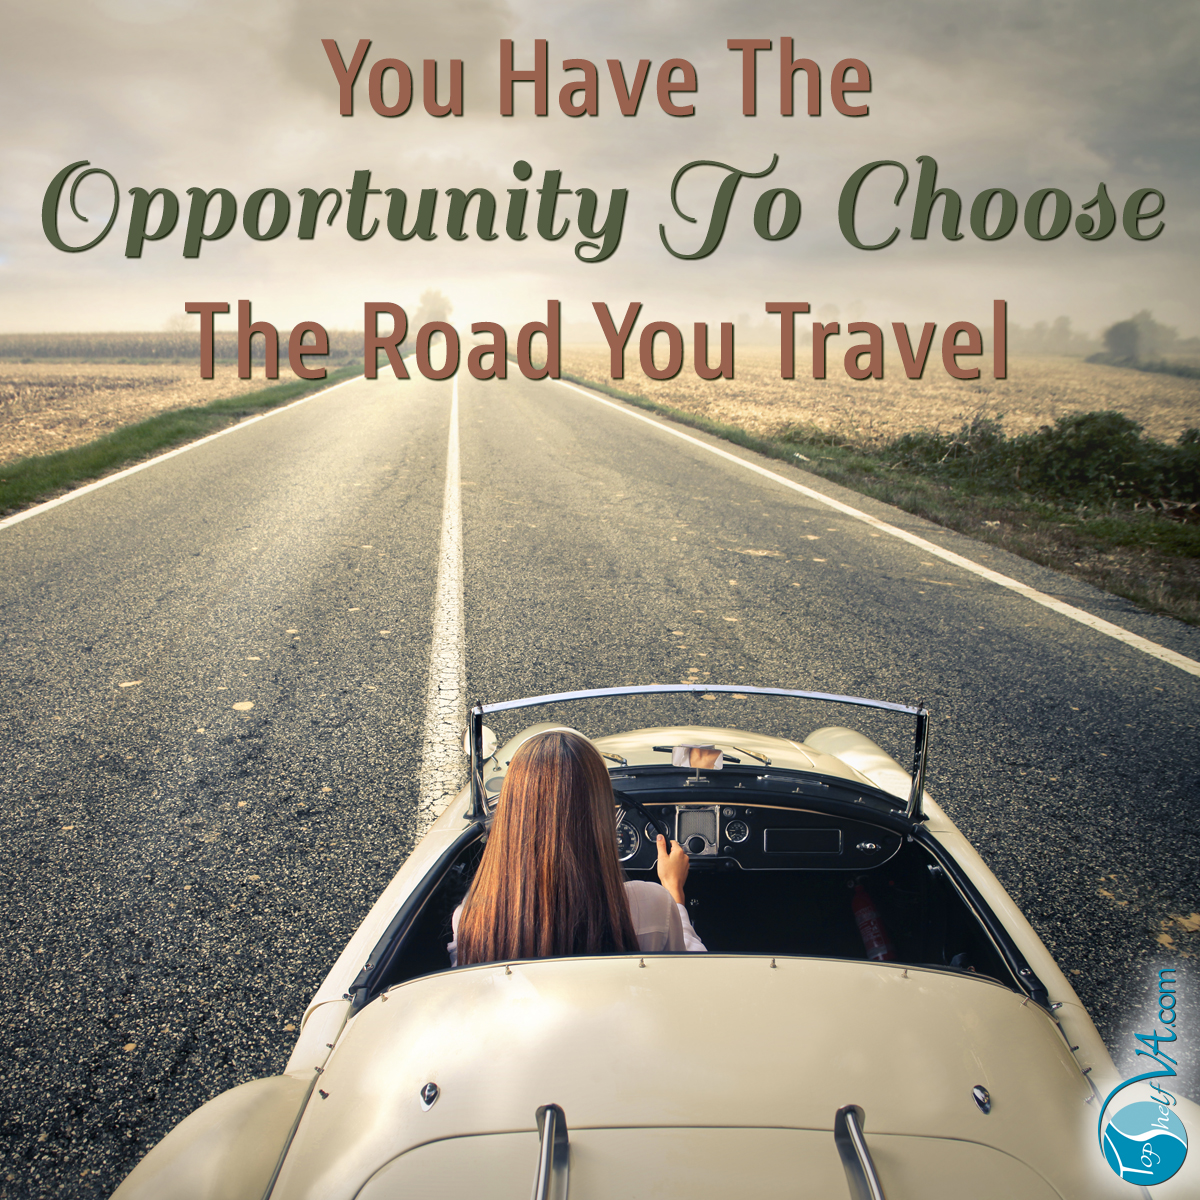 Top Shelf VA Services: You have the opportunity to choose the road you travel.